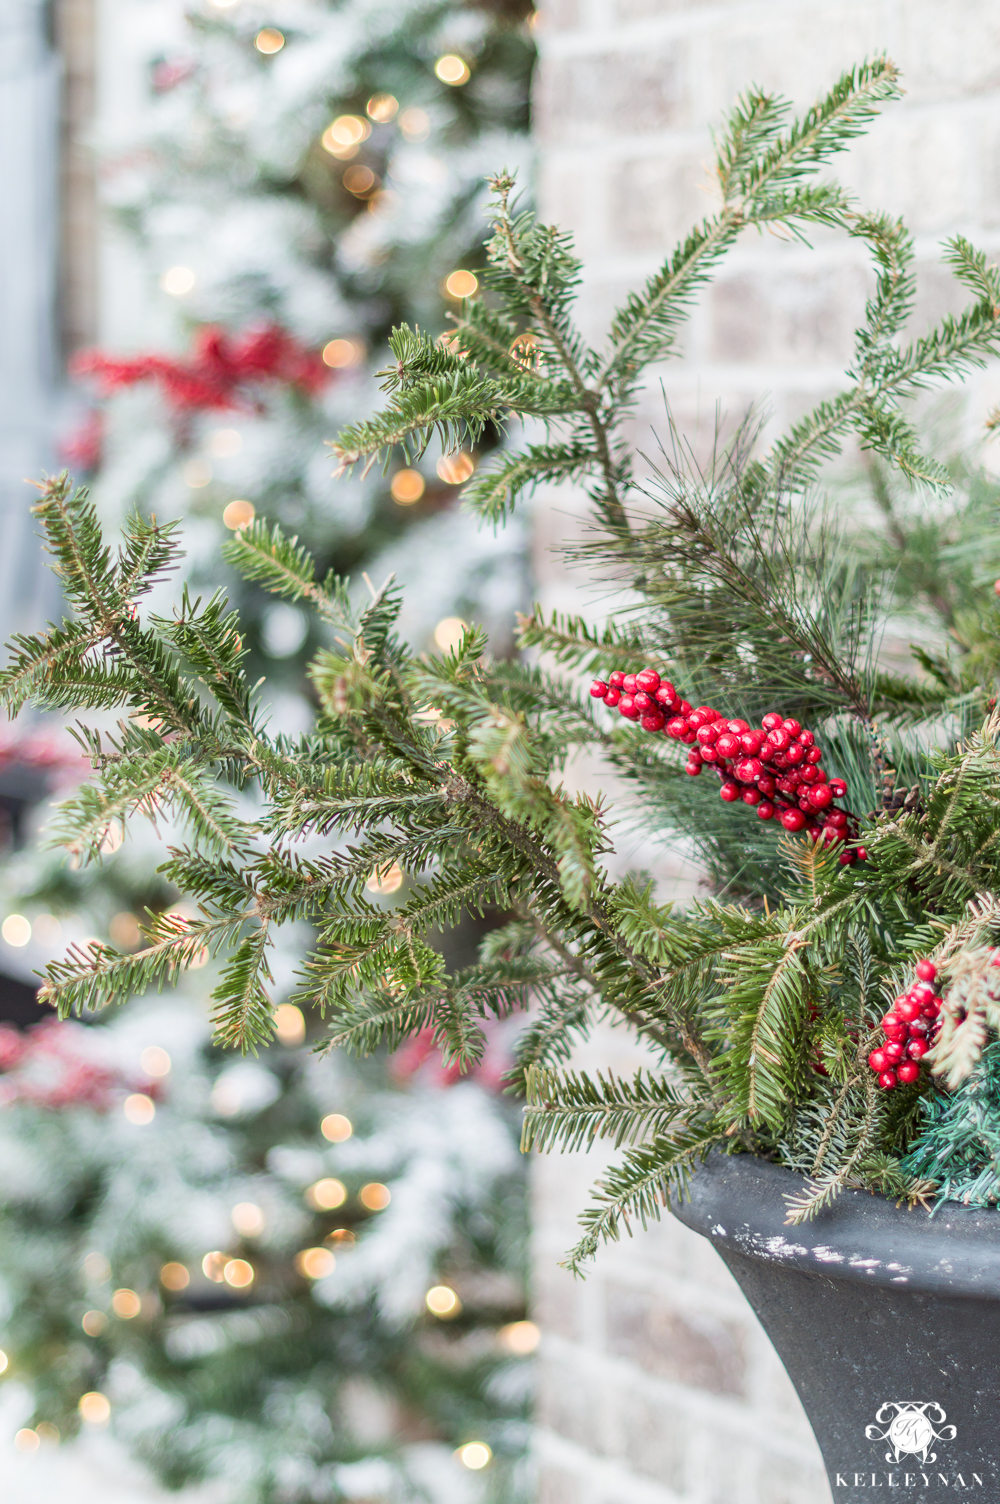 Fresh and Faux greenery in outdoor urns for the holidays